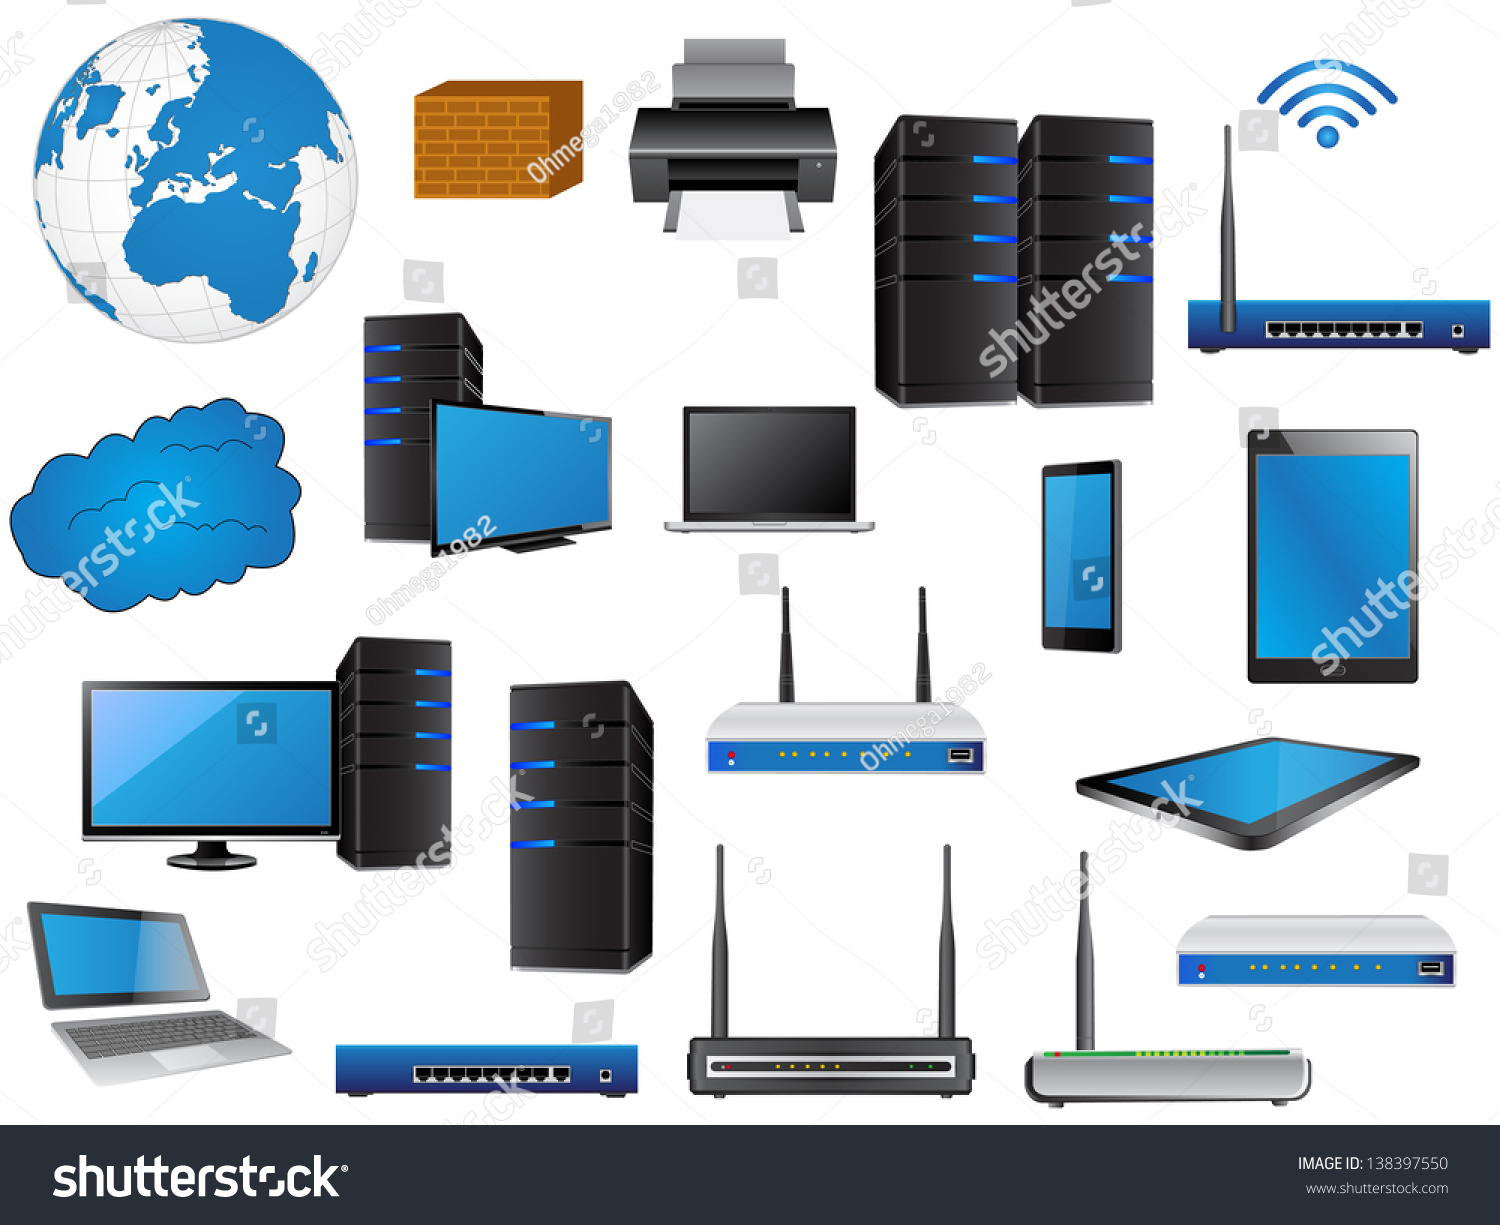 lan network diagram icons vector illustrator eps 10 for business and technology concept - Network Diagram Icon